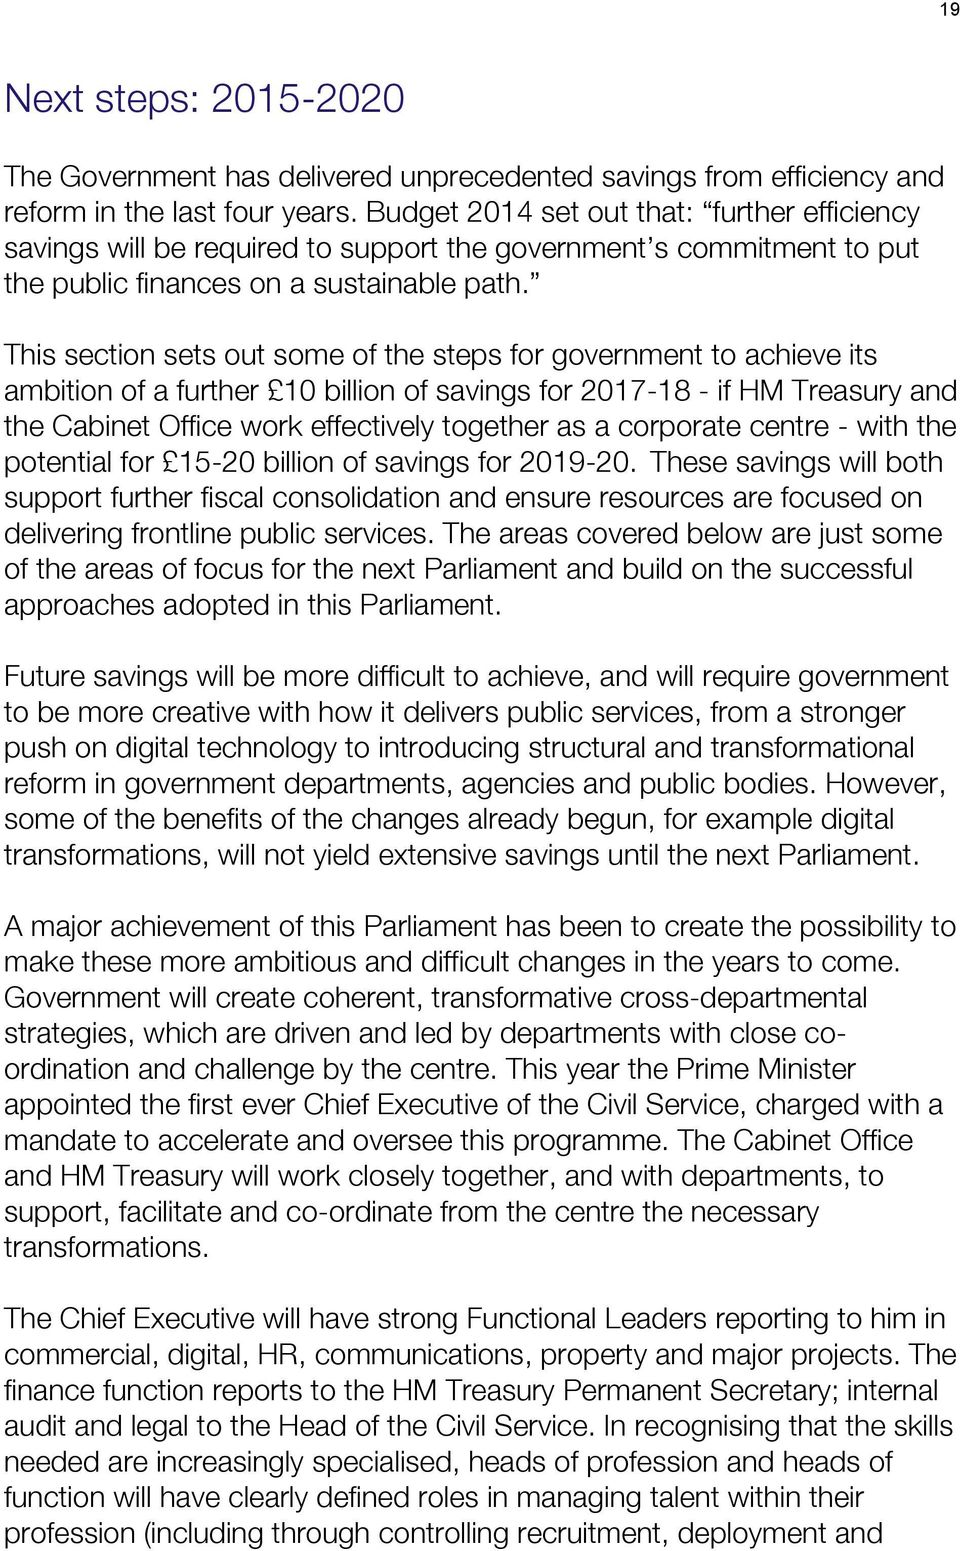 This section sets out some of the steps for government to achieve its ambition of a further 10 billion of savings for 2017-18 - if HM Treasury and the Cabinet Office work effectively together as a